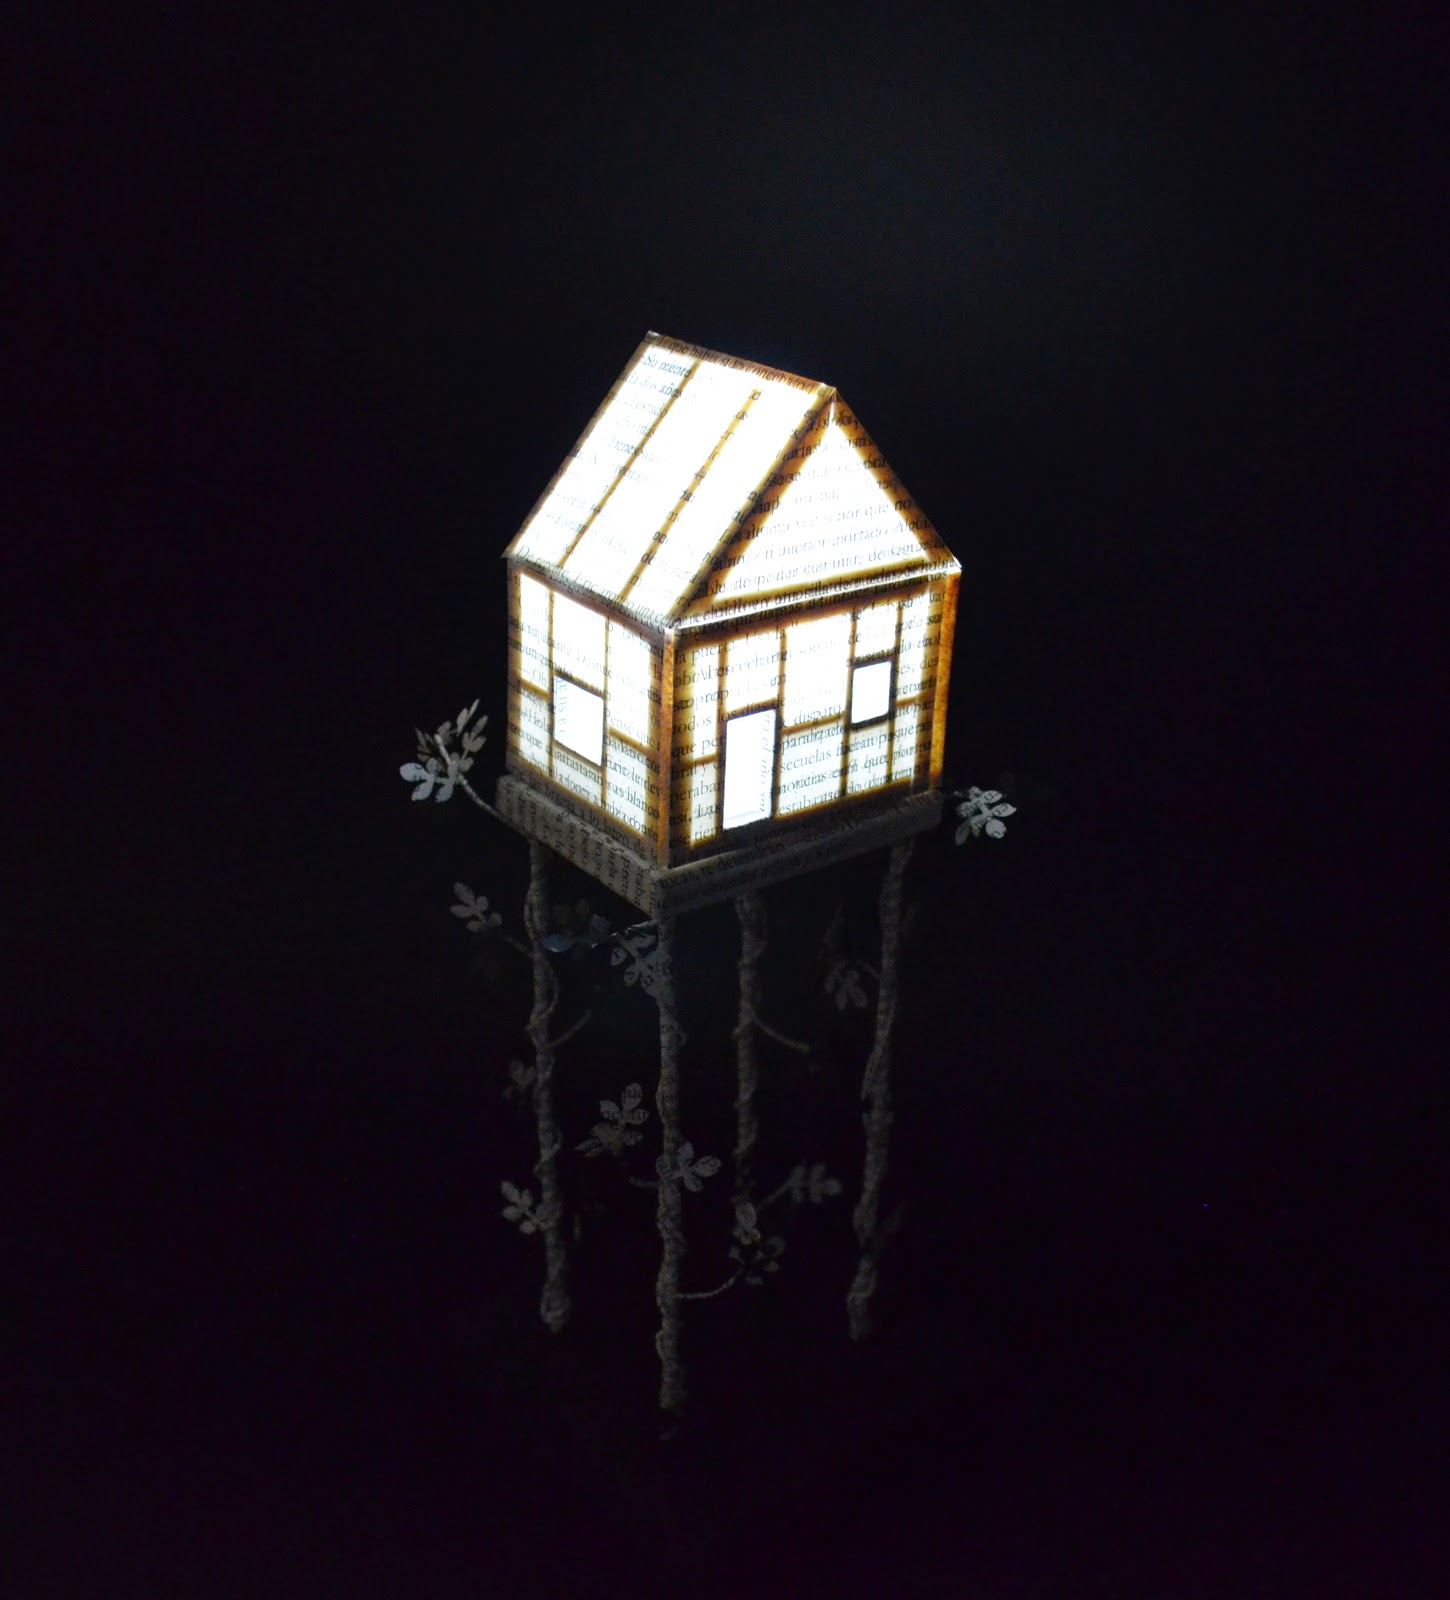 night-light-paper-house